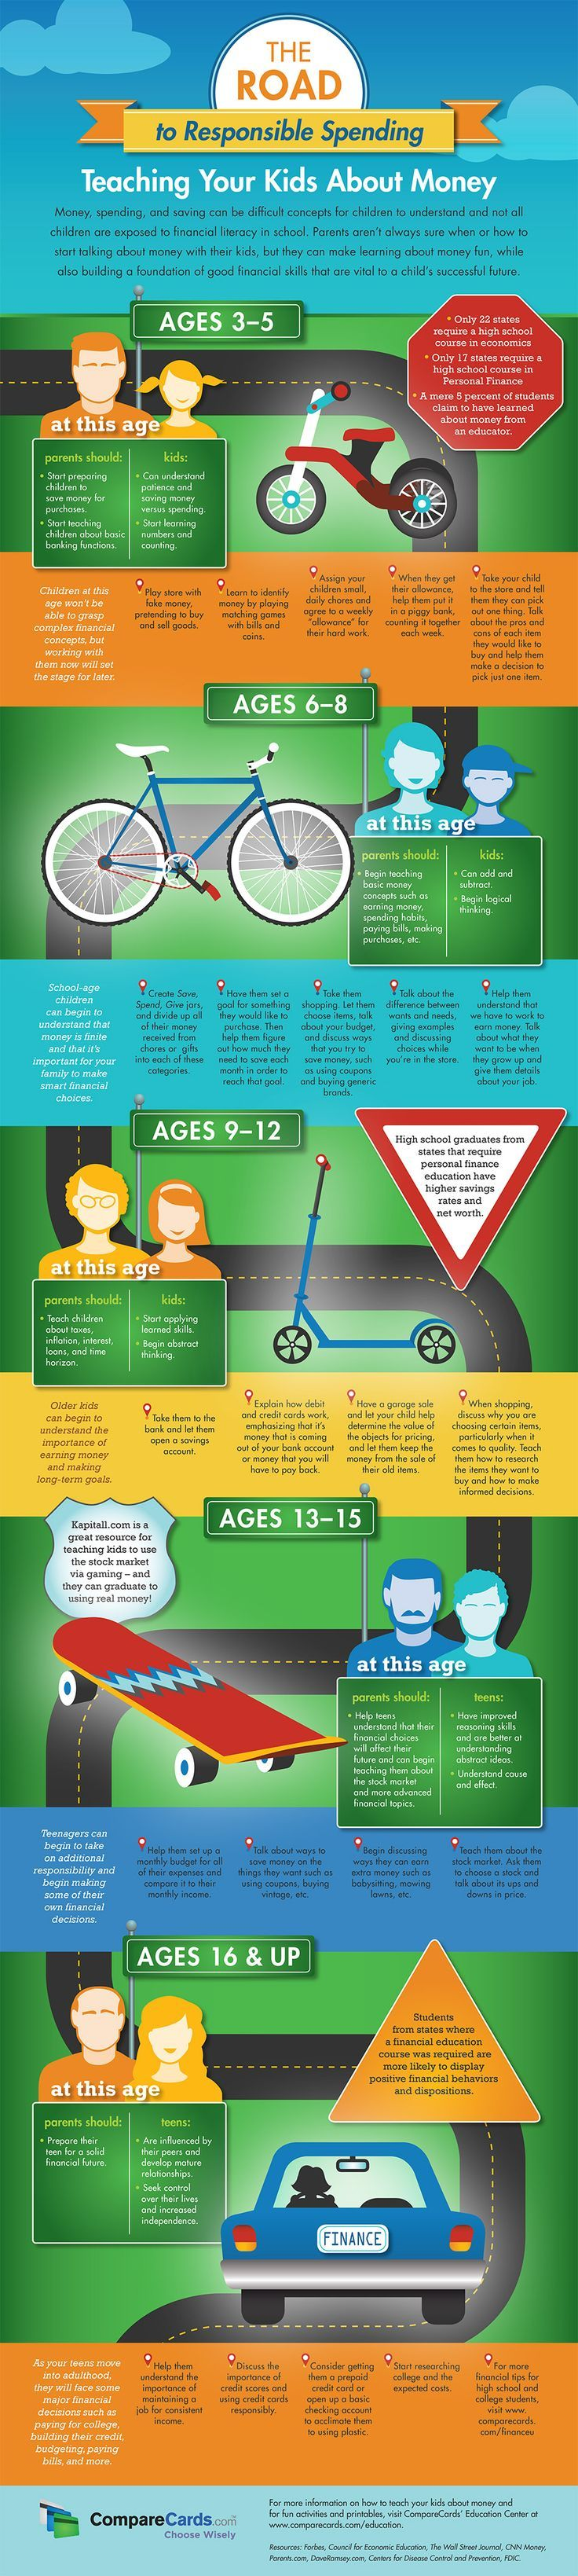 The Road to Responsible Spending. Teaching Your Kids About Money #infographic #Finance #Parenting